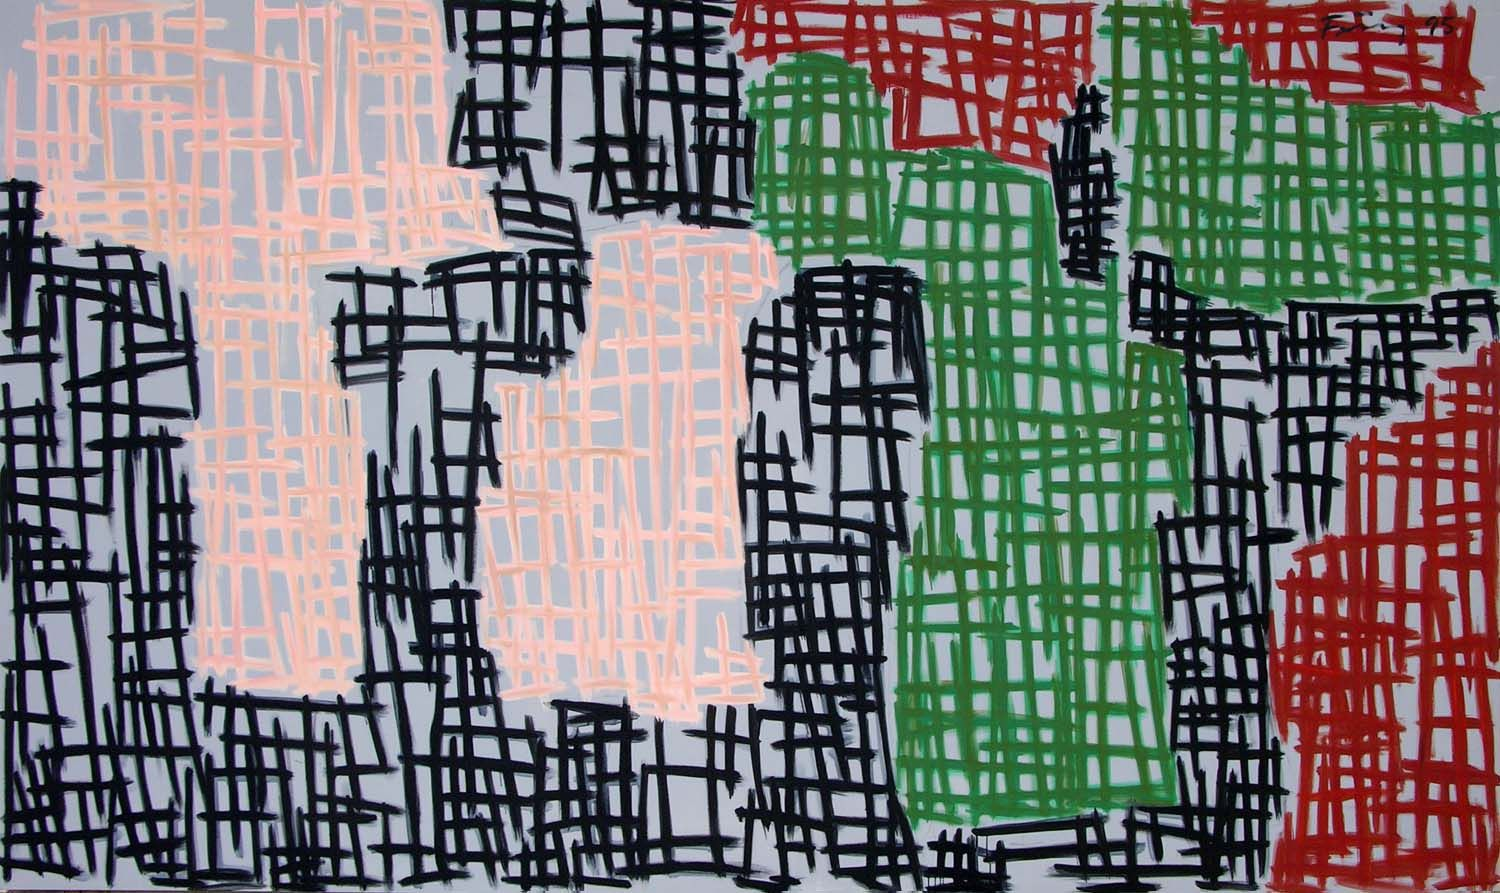 Untitled , 1995 Acrylic on canvas 98 3/4 x 165 3/4 inches